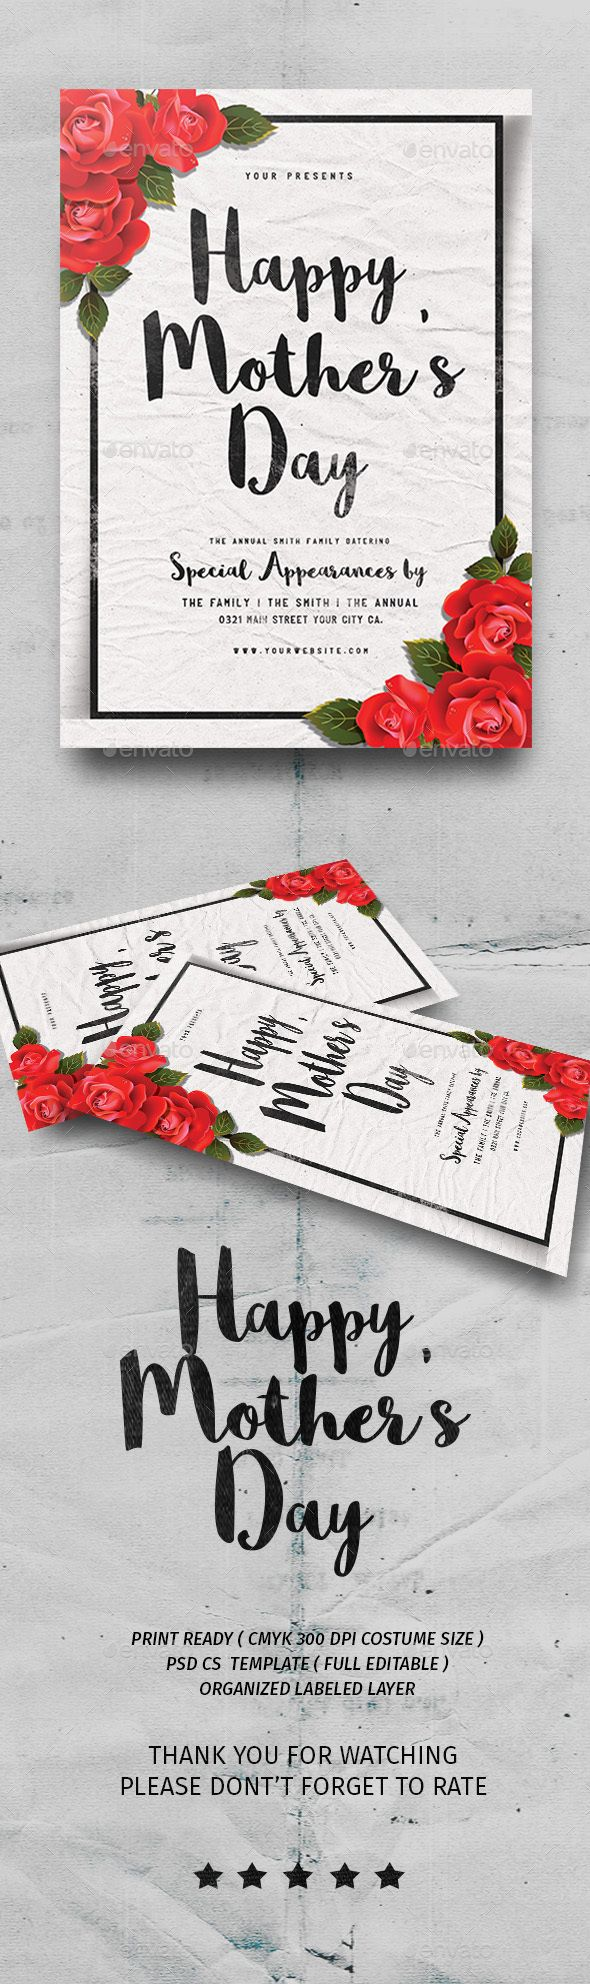 Happy Mother's Day  #flyer #template #script • Available here → http://graphicriver.net/item/happy-mothers-day/15772711?s_rank=101&ref=pxcr